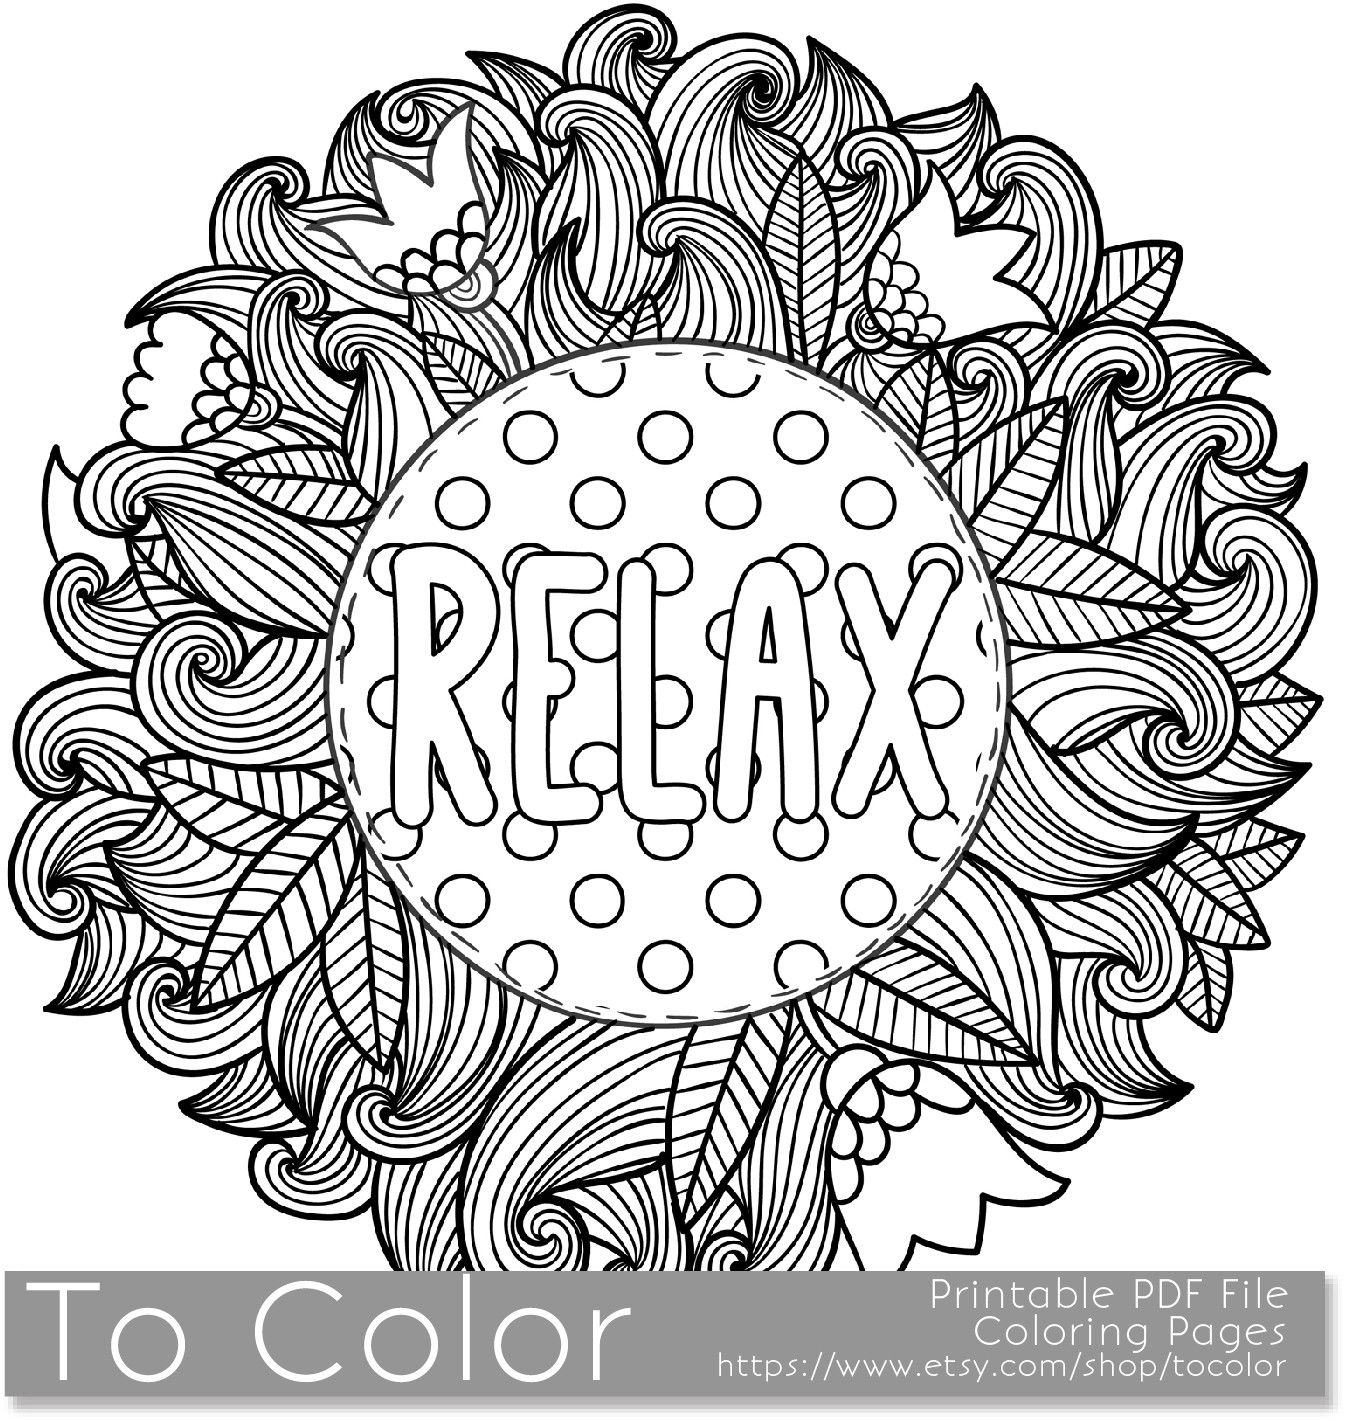 Free printable coloring pages for grown ups -  Relax Coloring Page For Grown Ups This Is A Printable Pdf Coloring Page